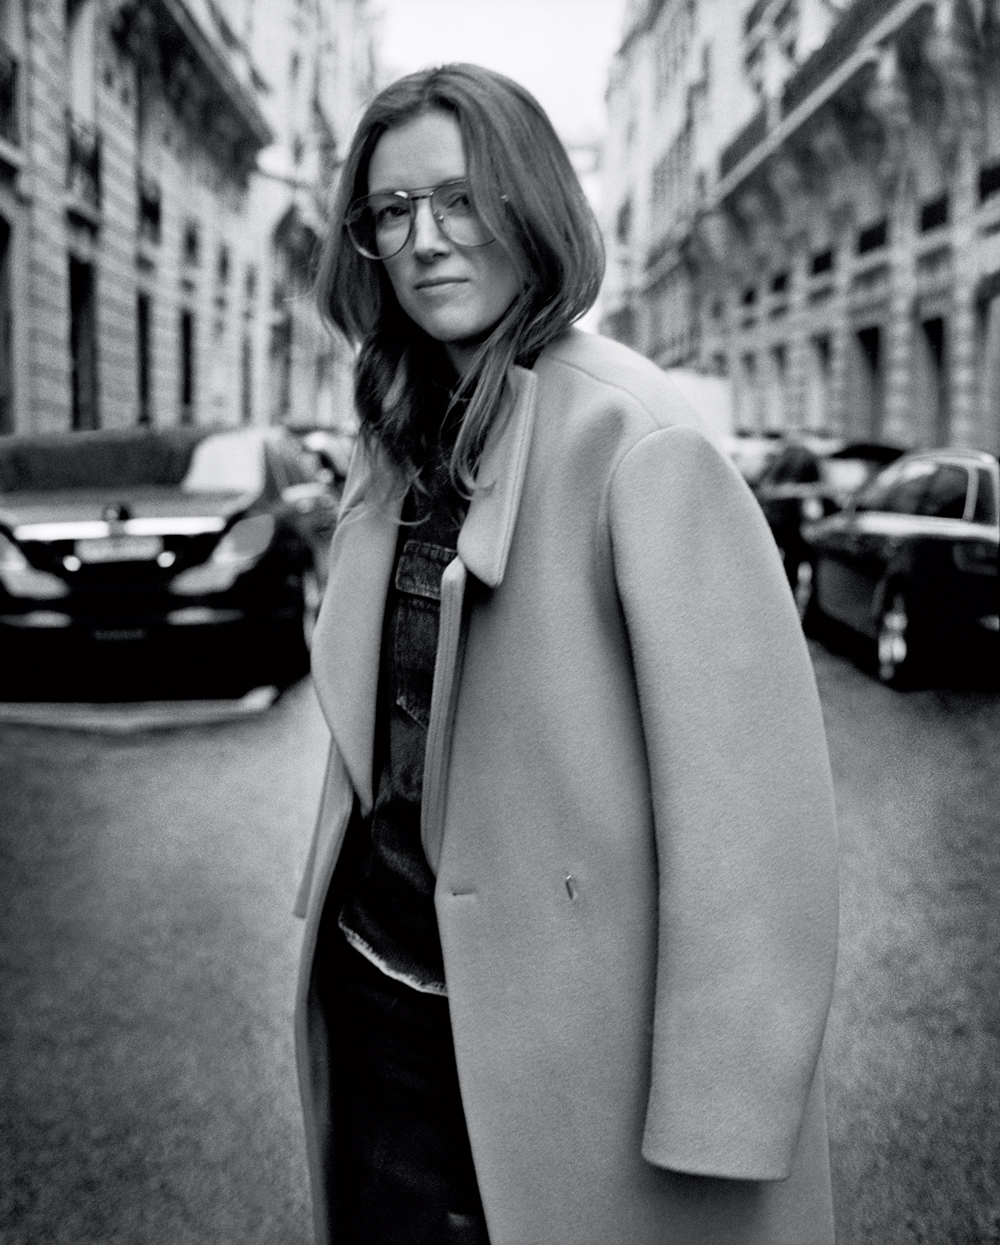 Clare Waight Keller, creative director of Chloé, photographedpar Theo Wenner.